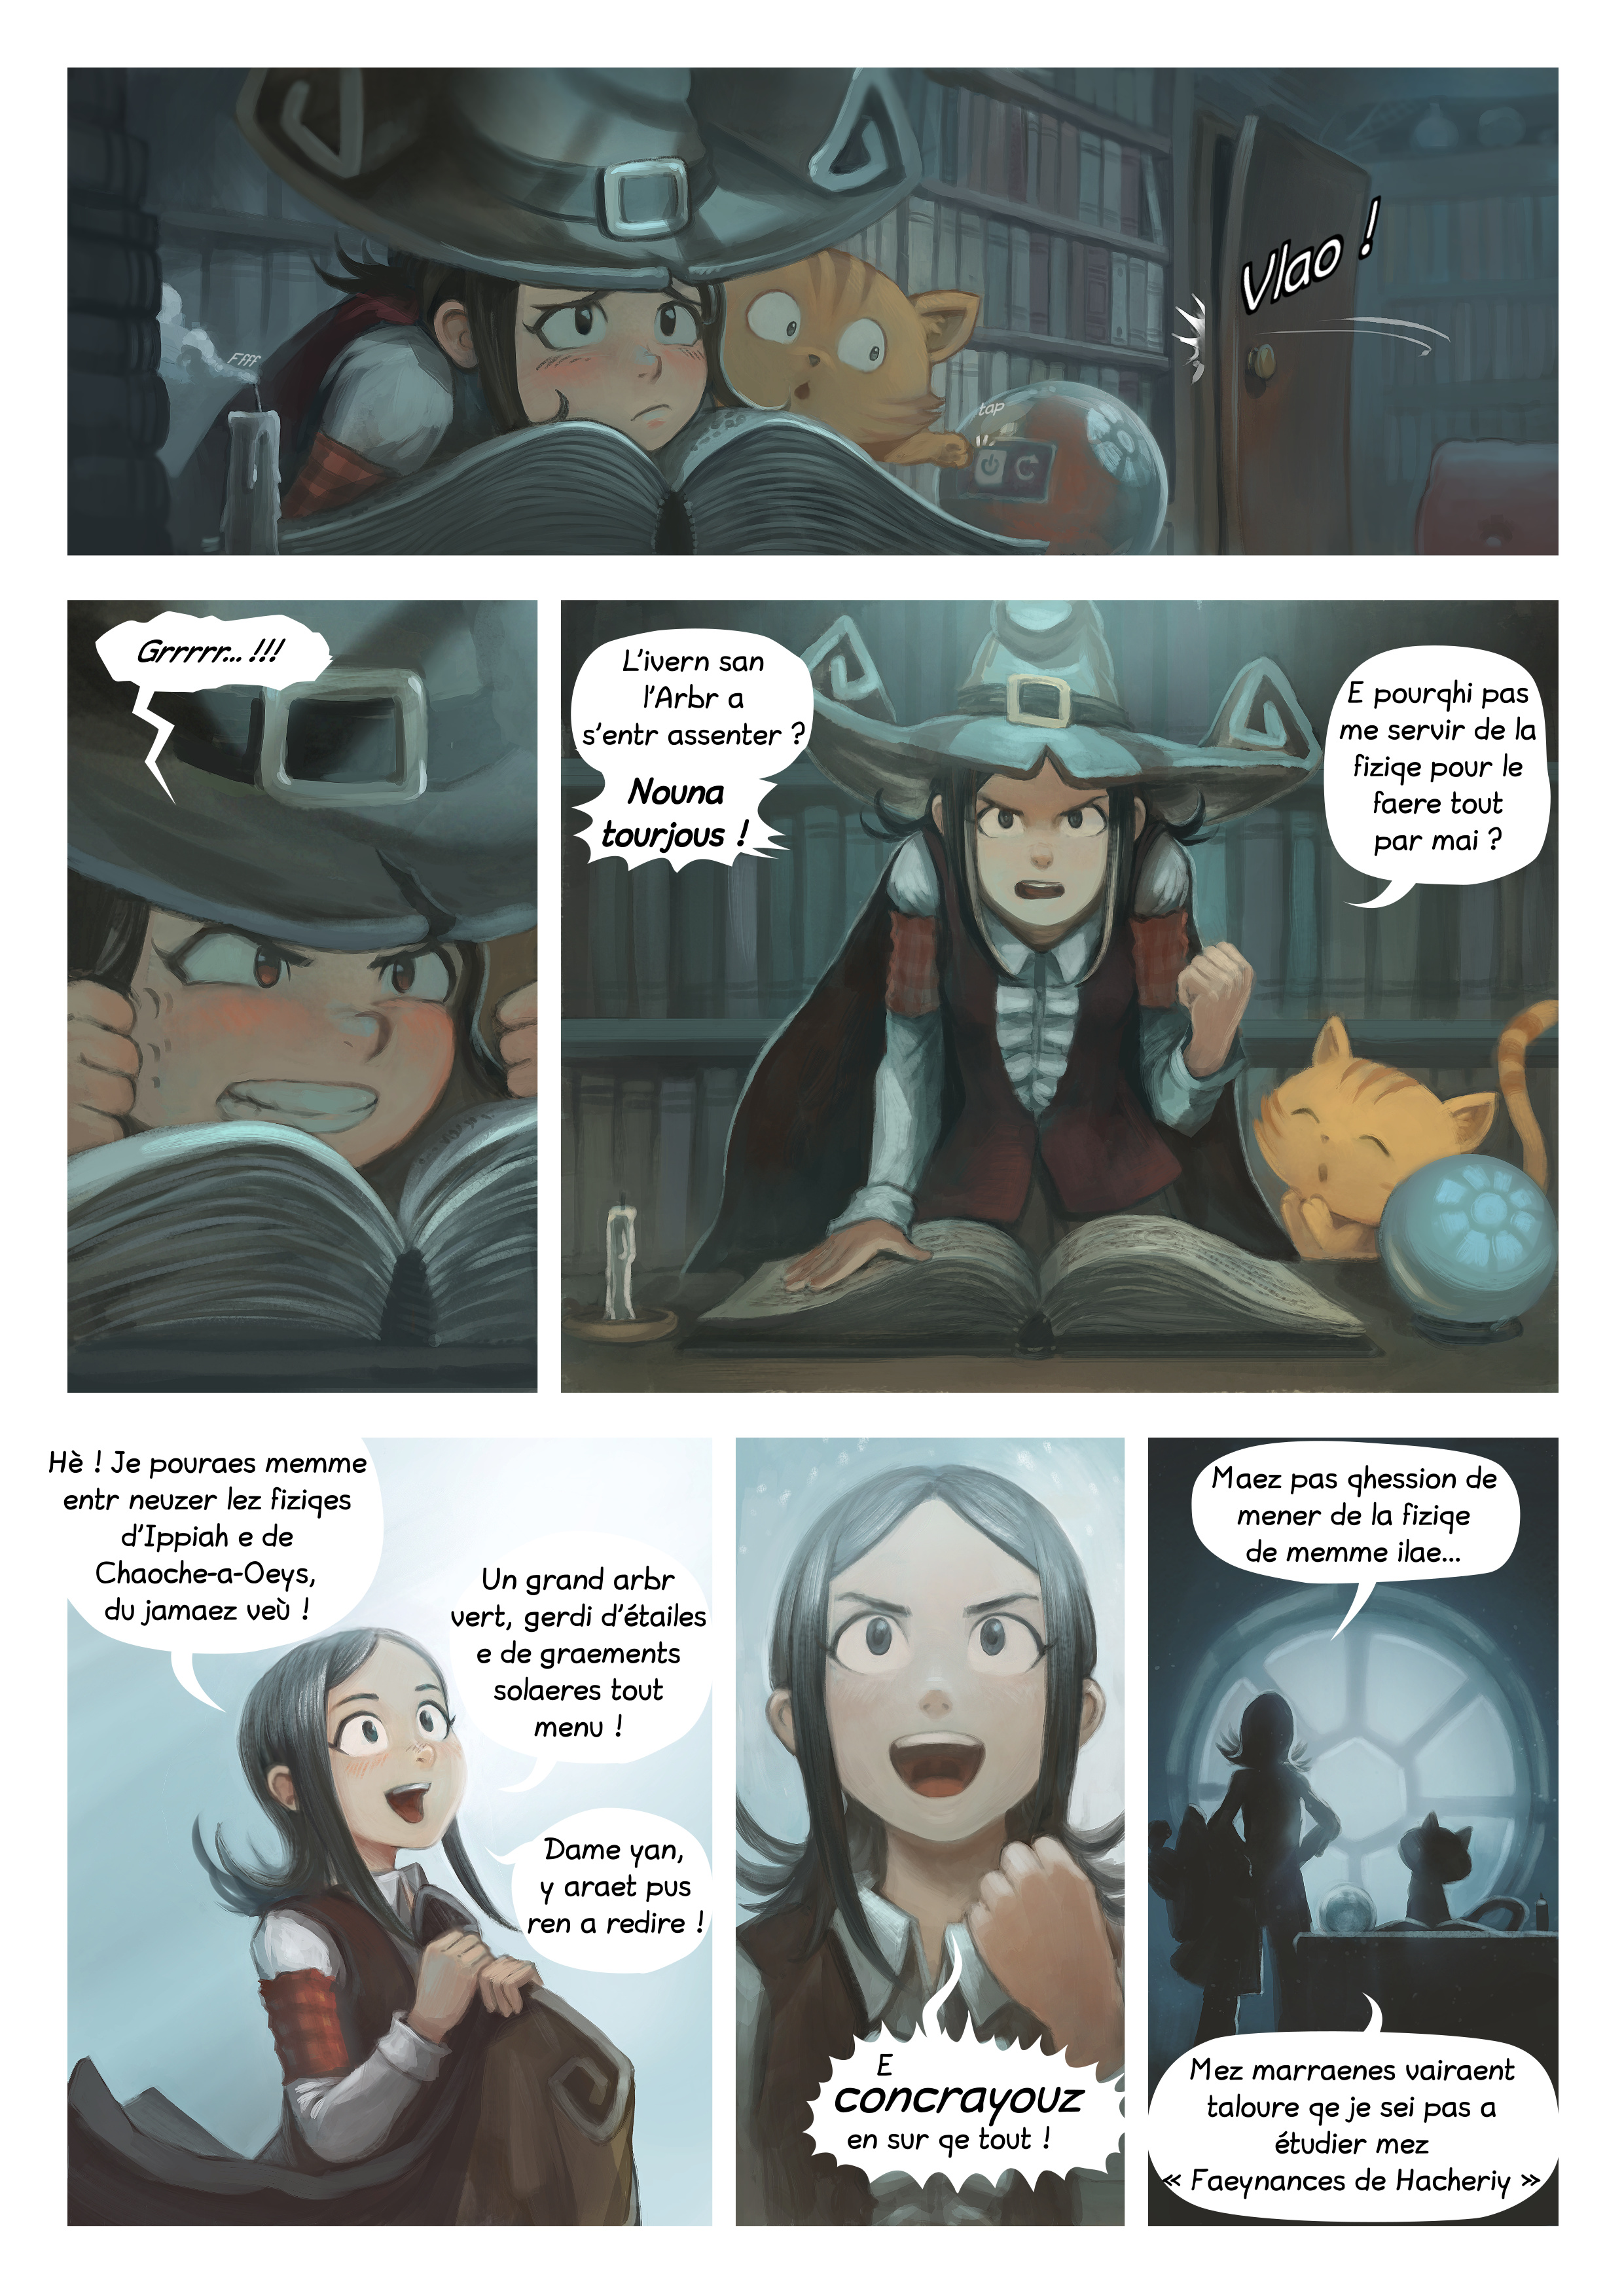 A webcomic page of Pepper&Carrot, episode 24 [go], page 2